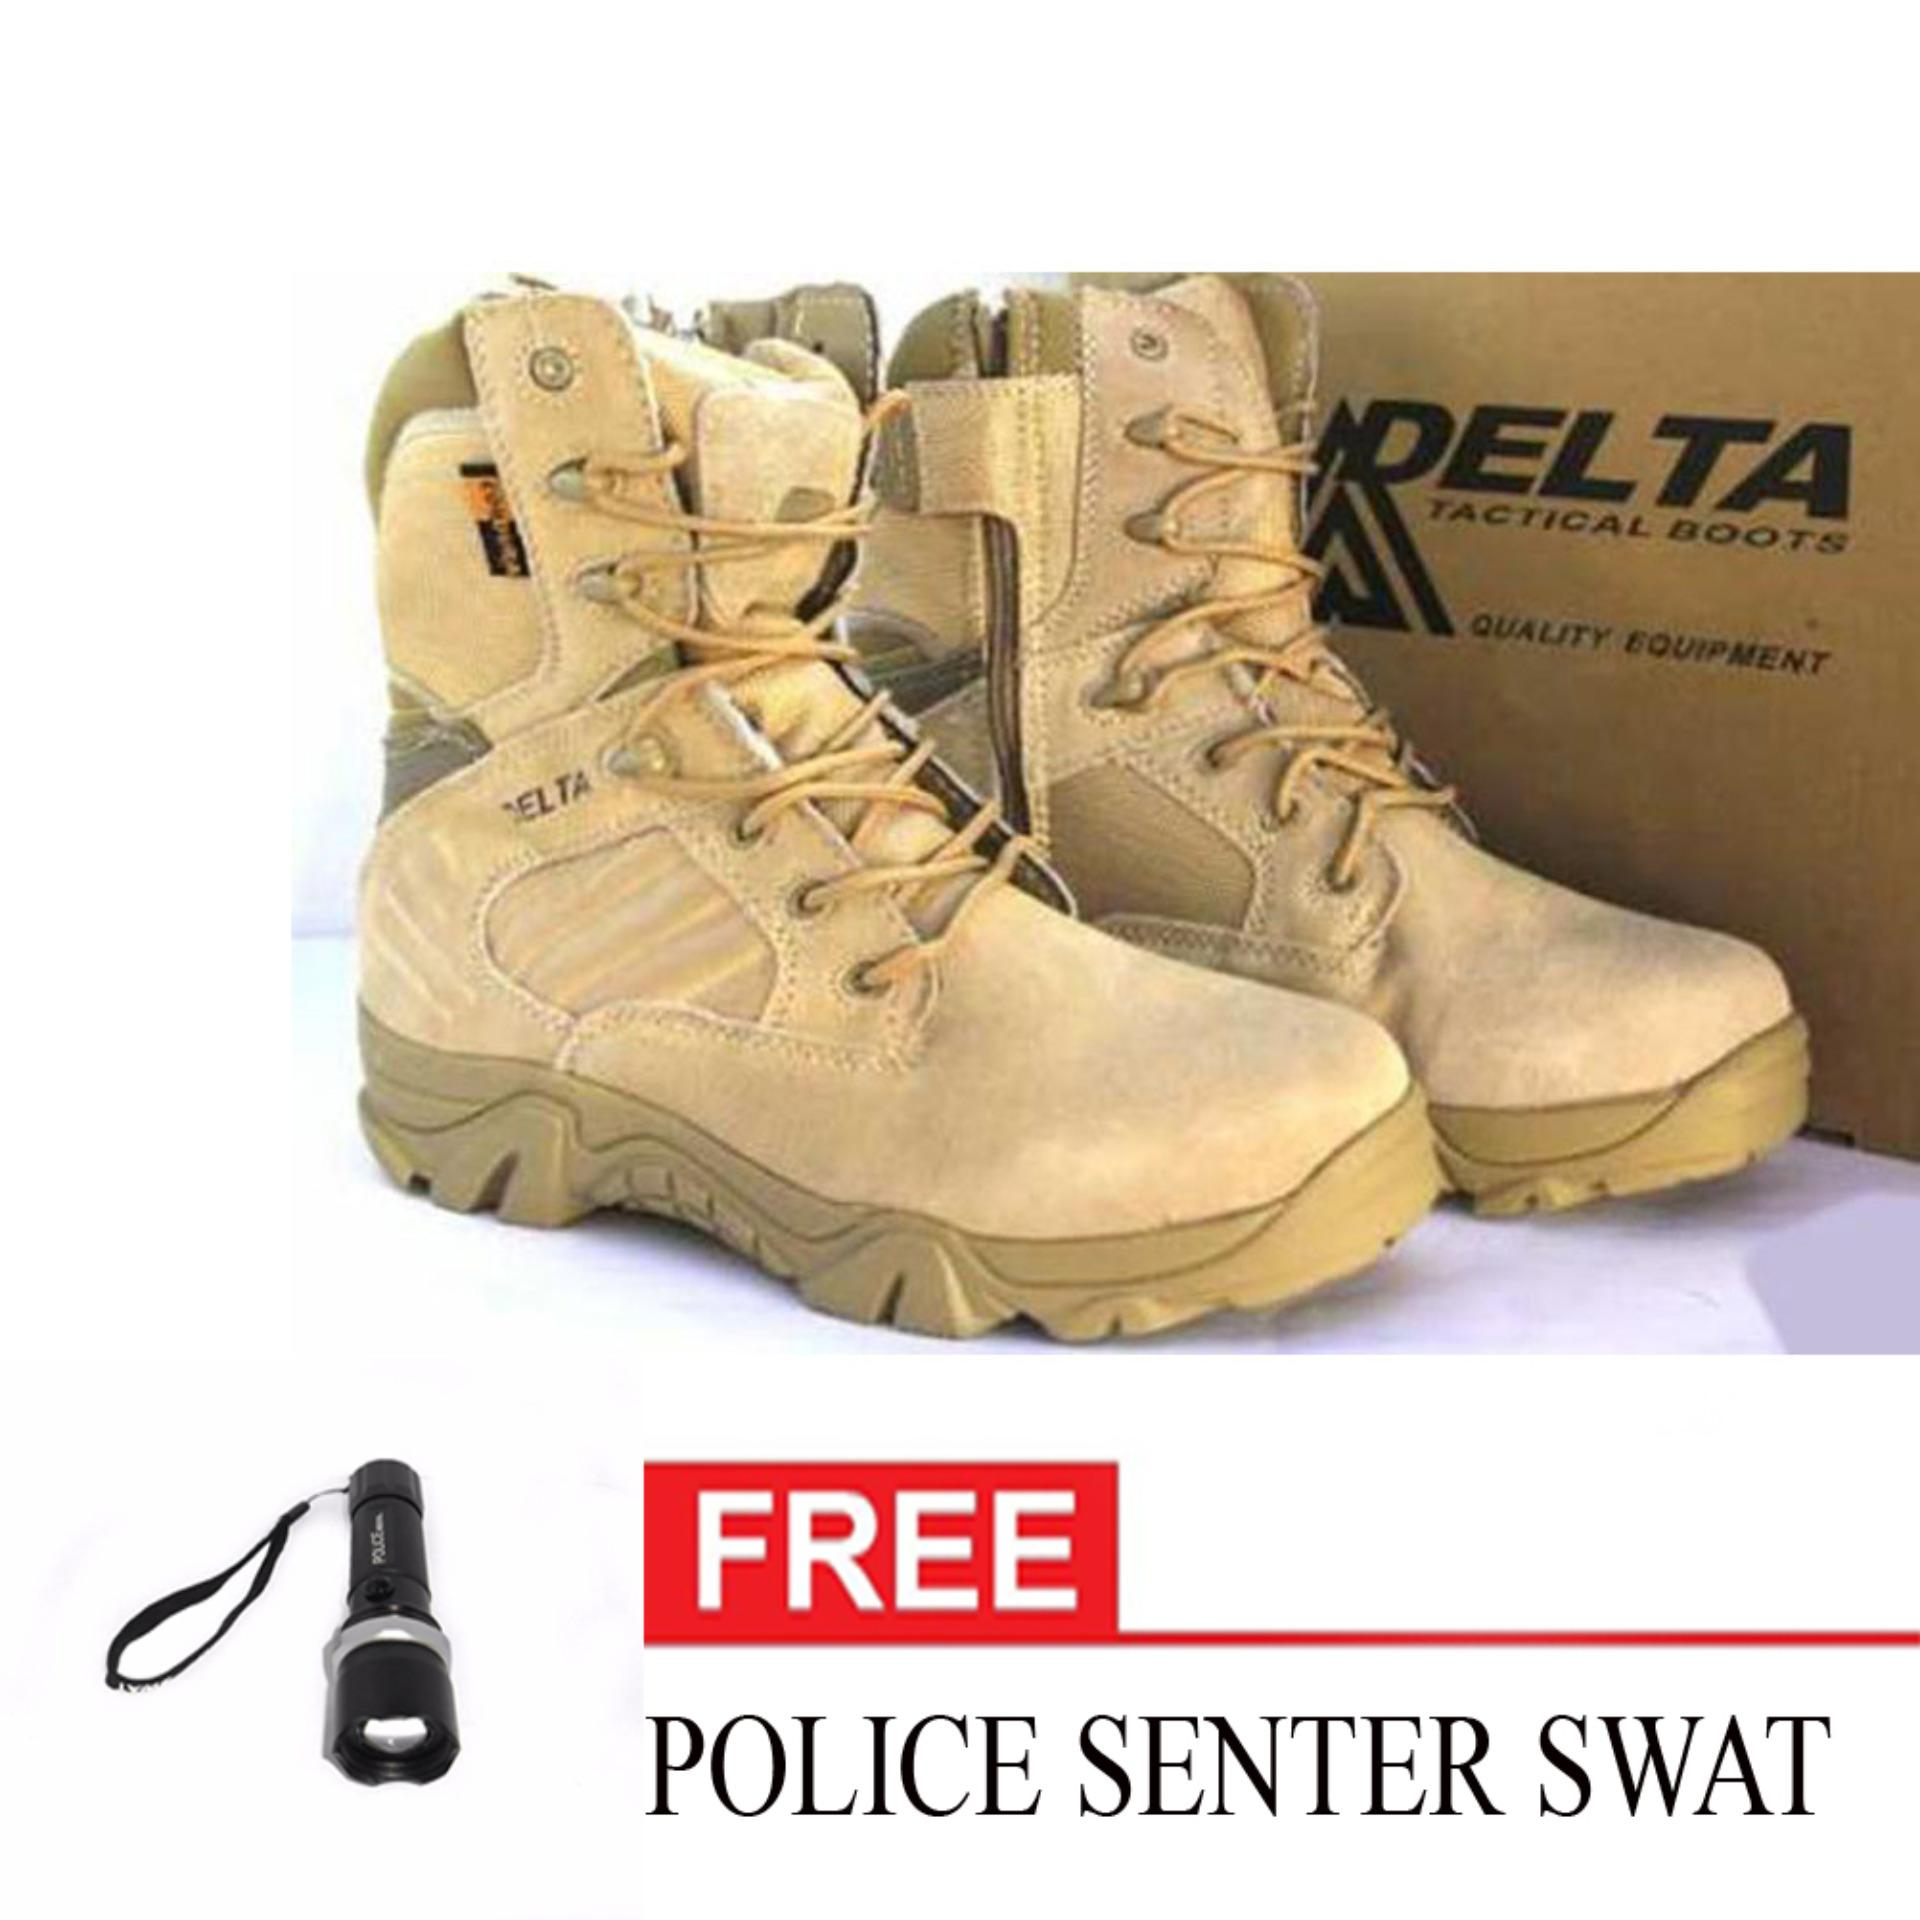 Delta Dbest Sepatu Boot Hiking Delta High 8inch Quality Outdoor + POLICE SENTER SWAT